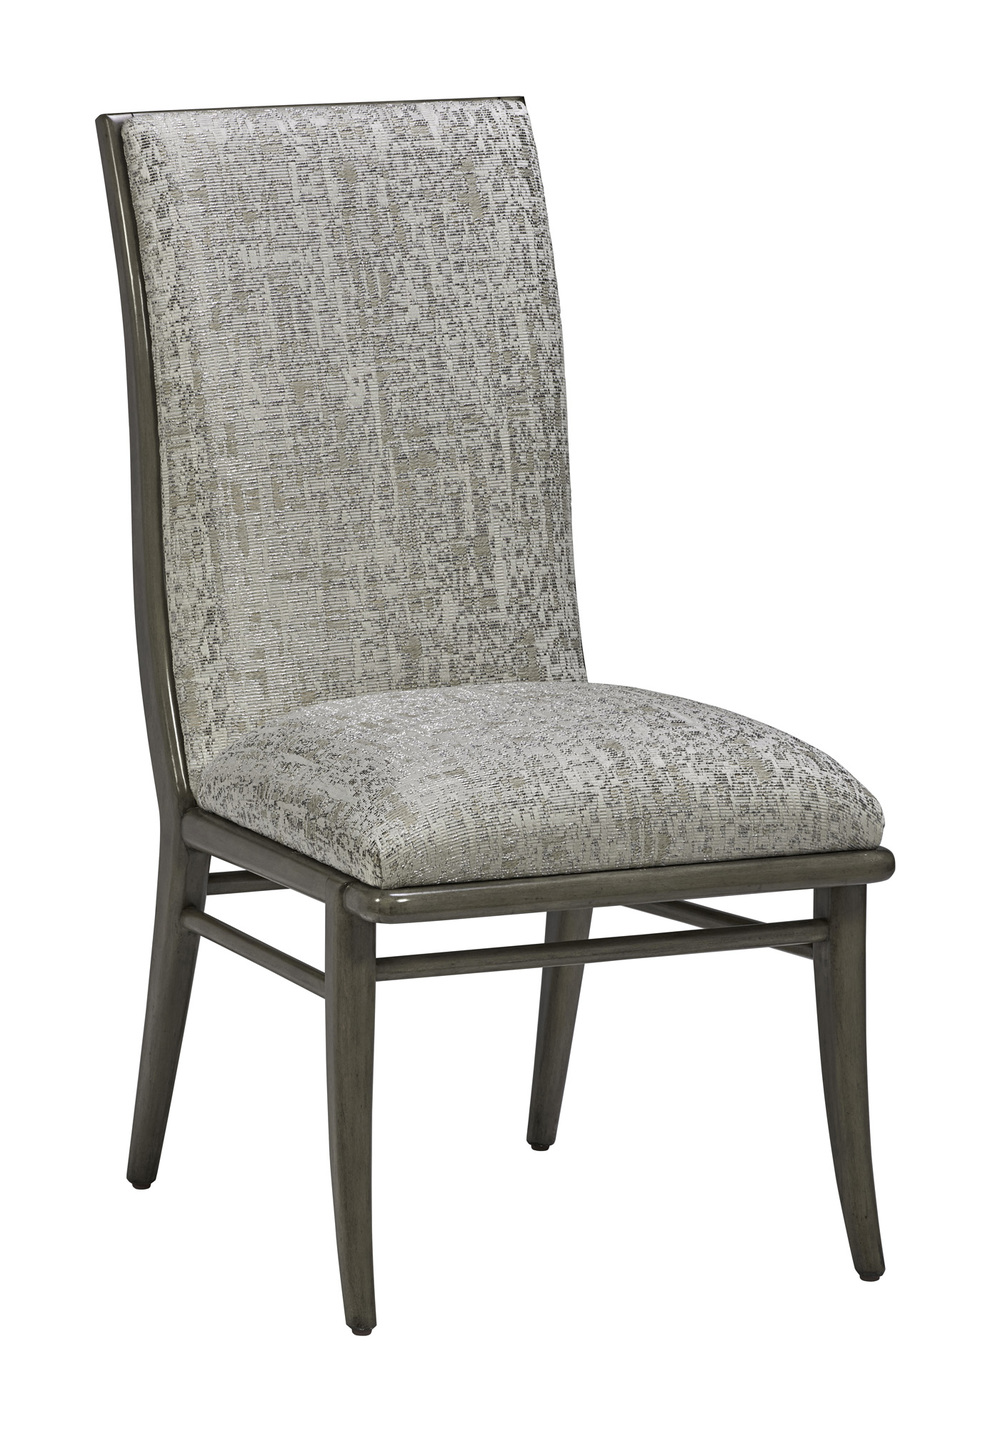 Marge Carson - Equinox Side Chair